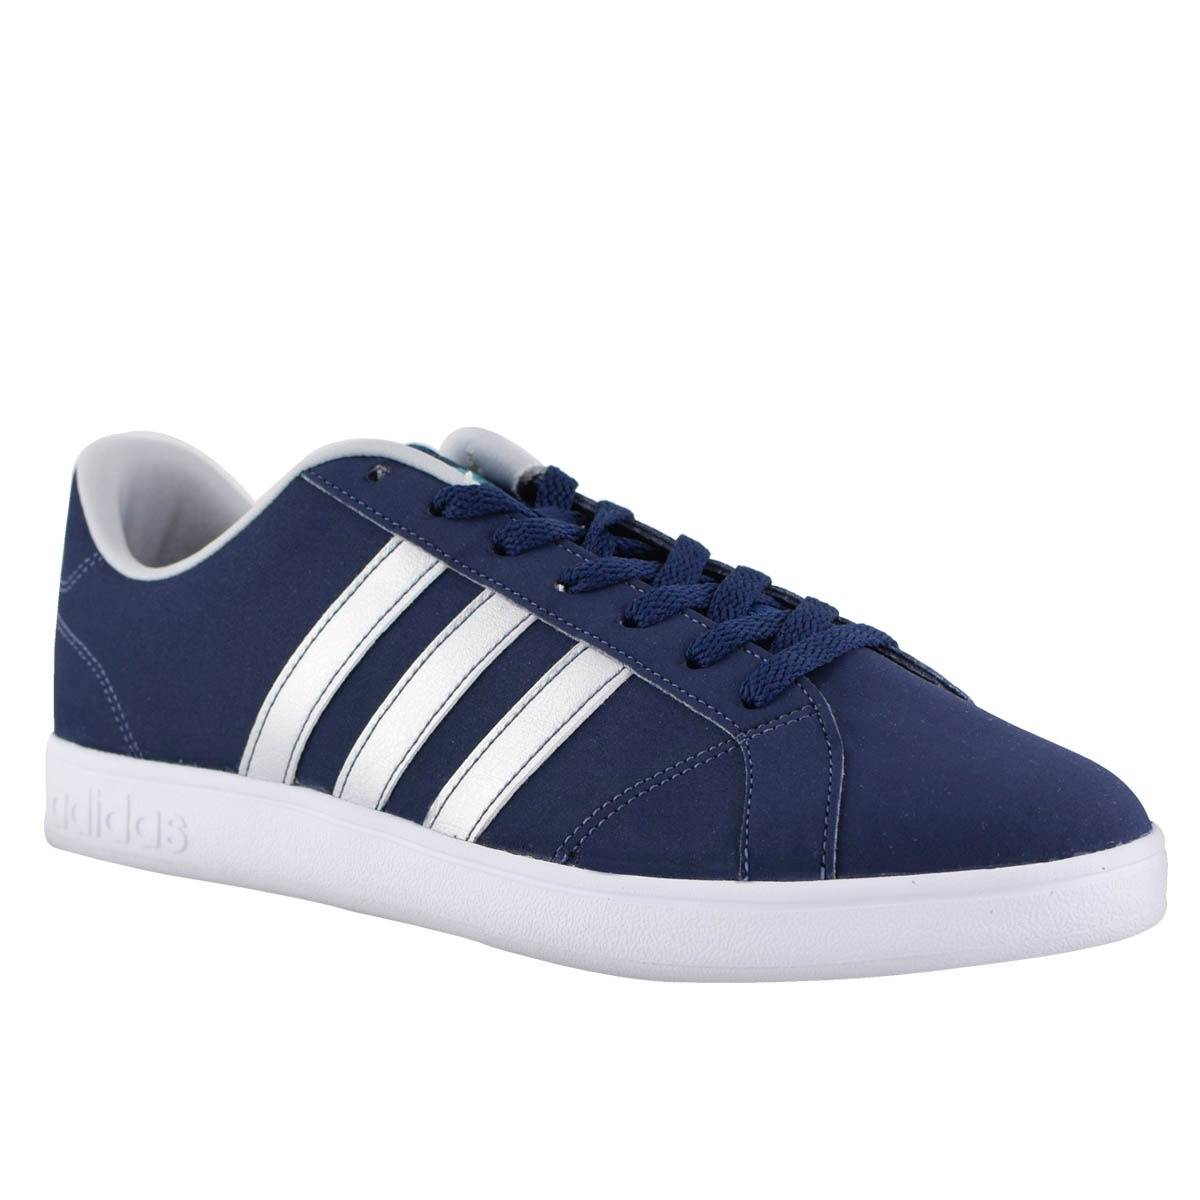 where to buy adidas neo azul and blanco 4ce56 5a02c